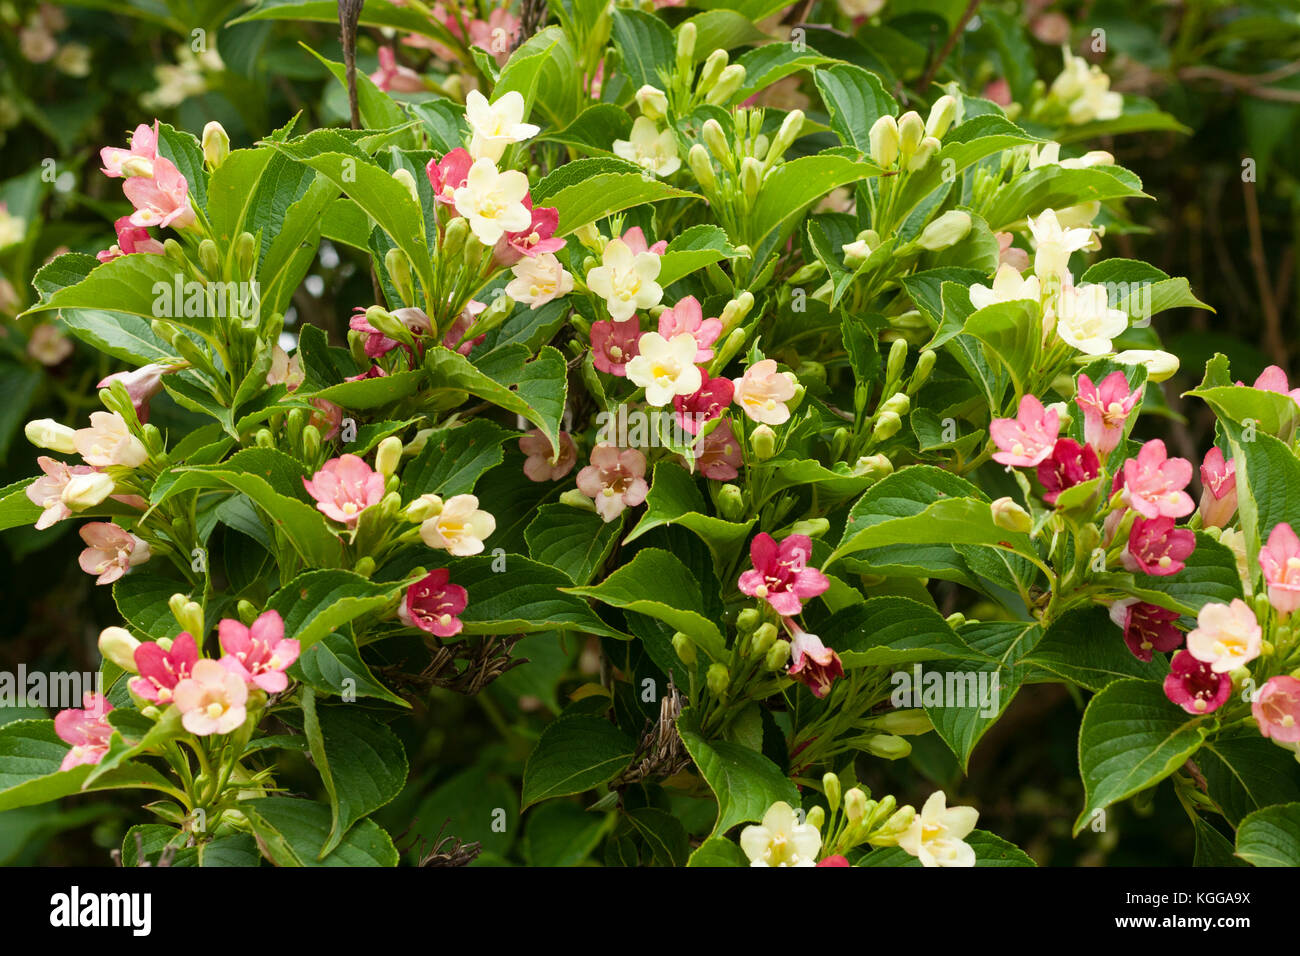 Early summer flowers of the hardy shrub, Weigela coraeensis 'Alba', turn from white to pink as they mature Stock Photo